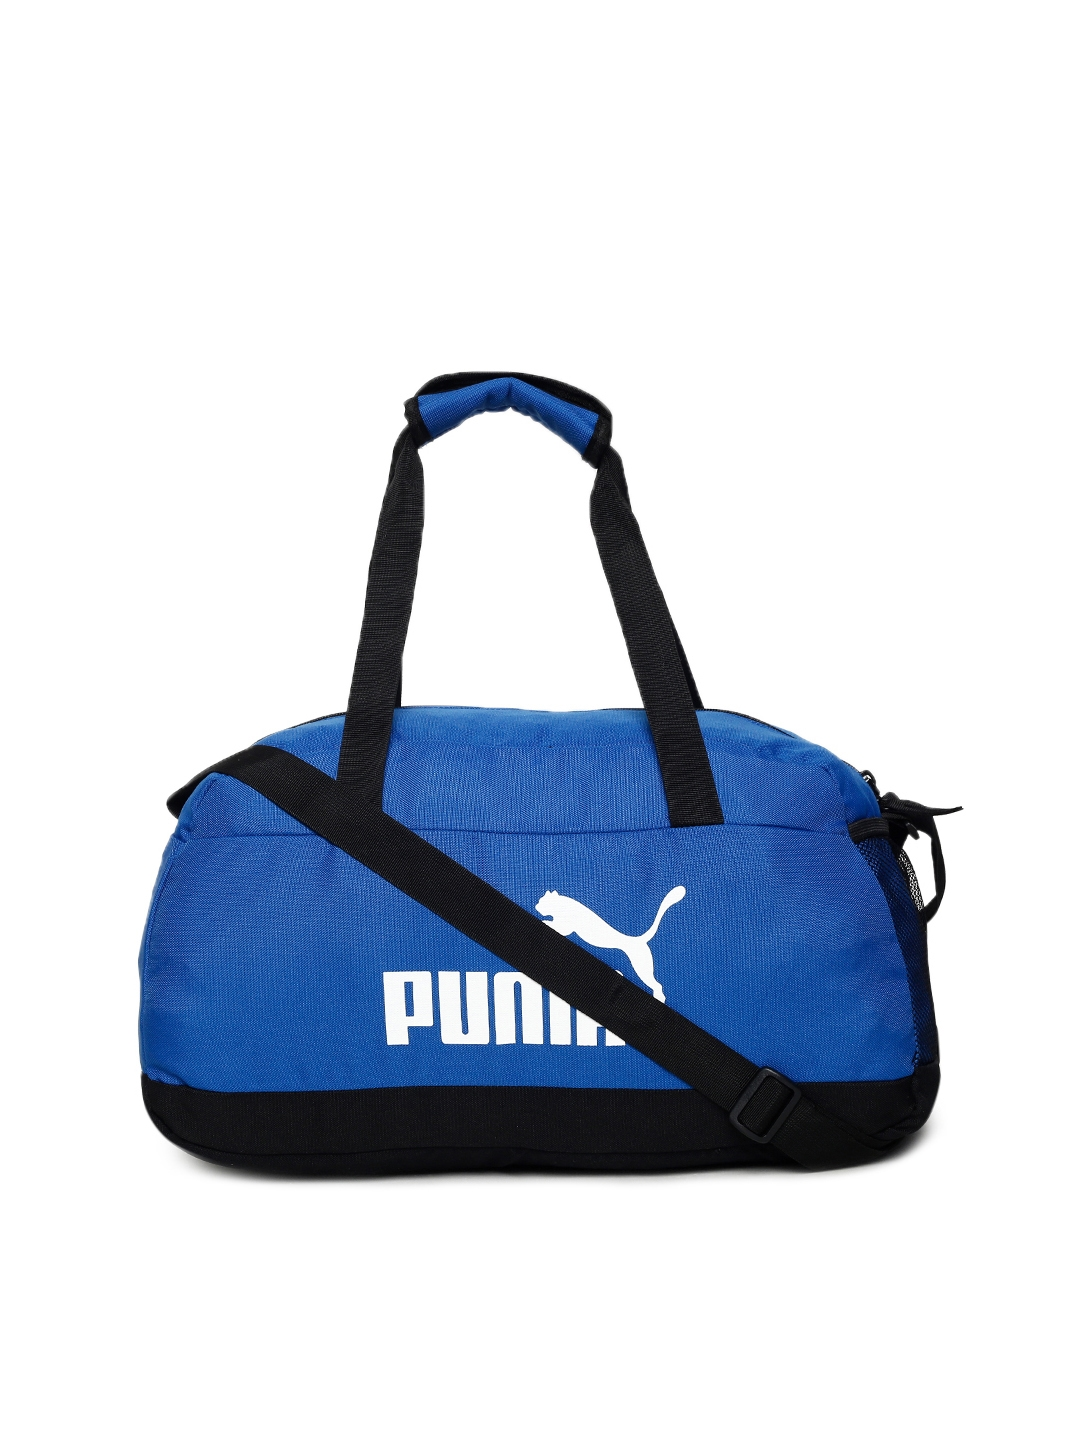 a1306c1dc6 Buy Puma Unisex Blue   Black Phase Sport Duffel Bag - Duffel Bag for ...